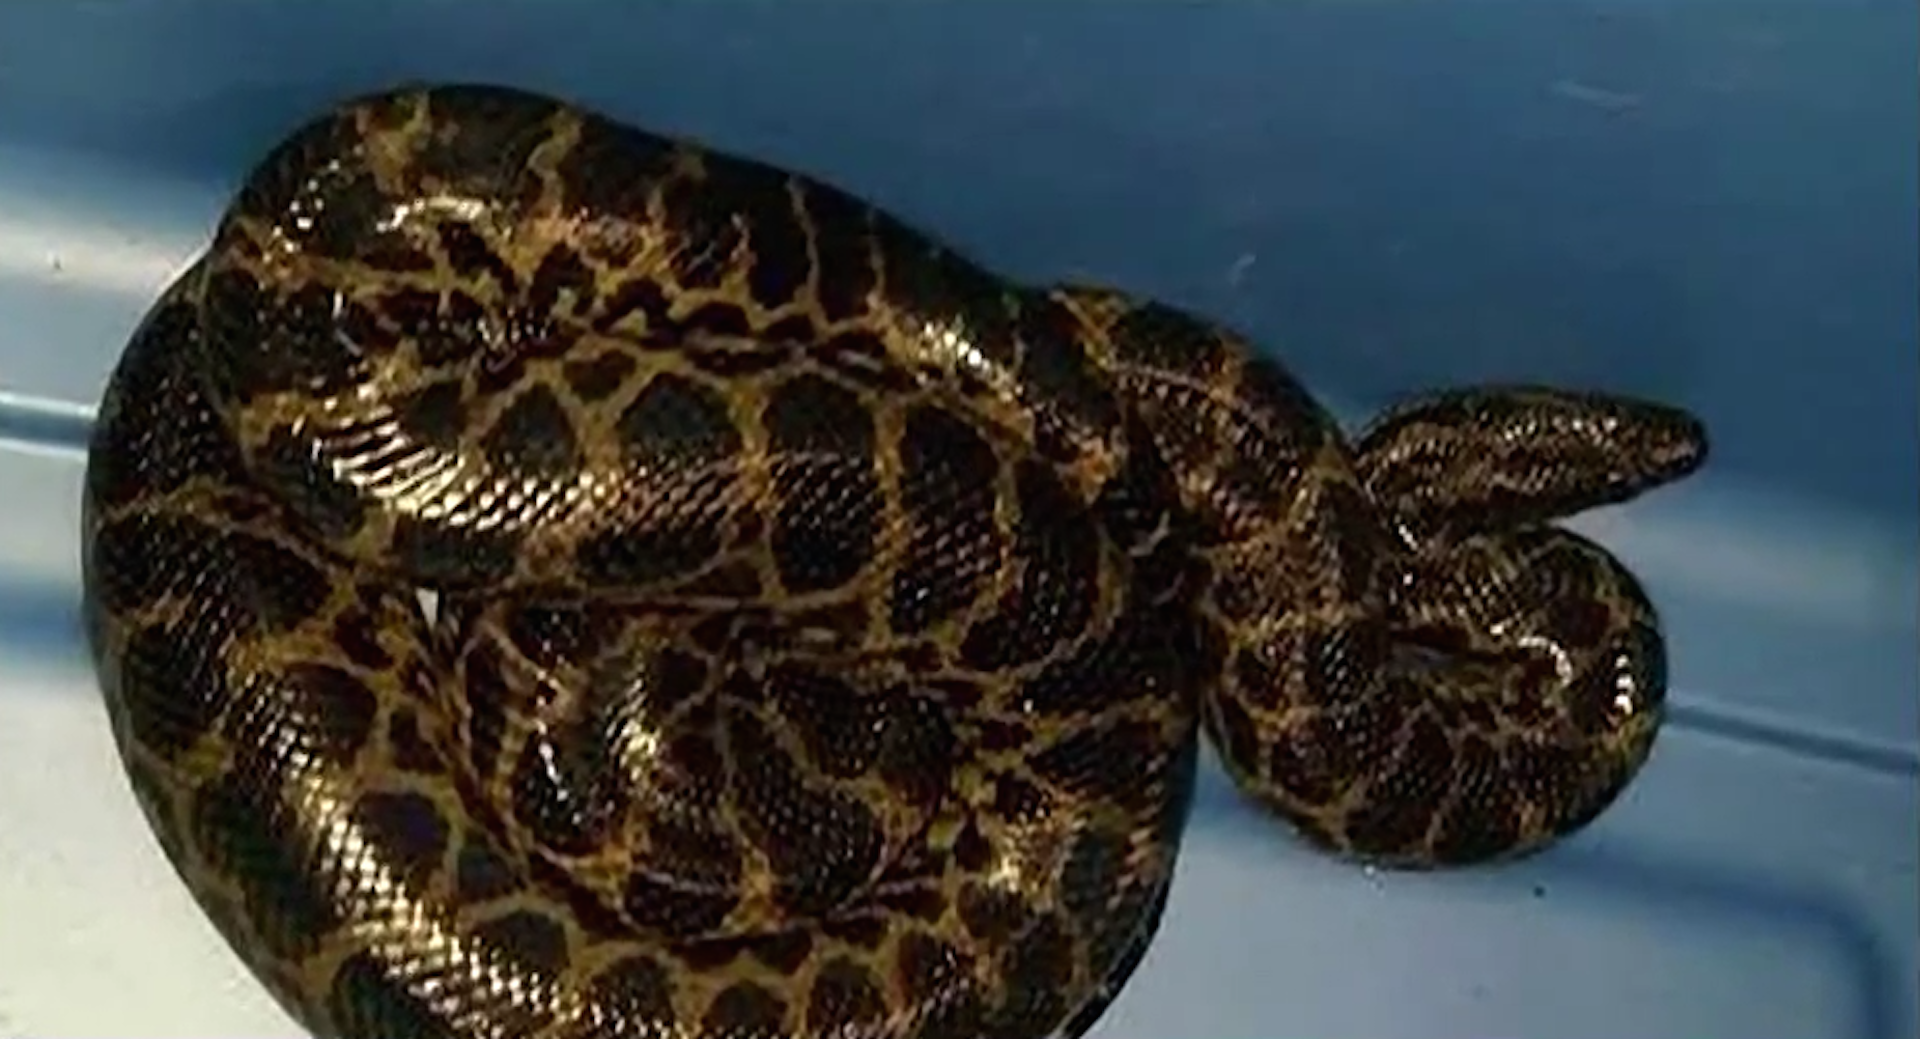 A Texas boy found a rattlesnake in a toilet. Then a snake catcher found 23 more.